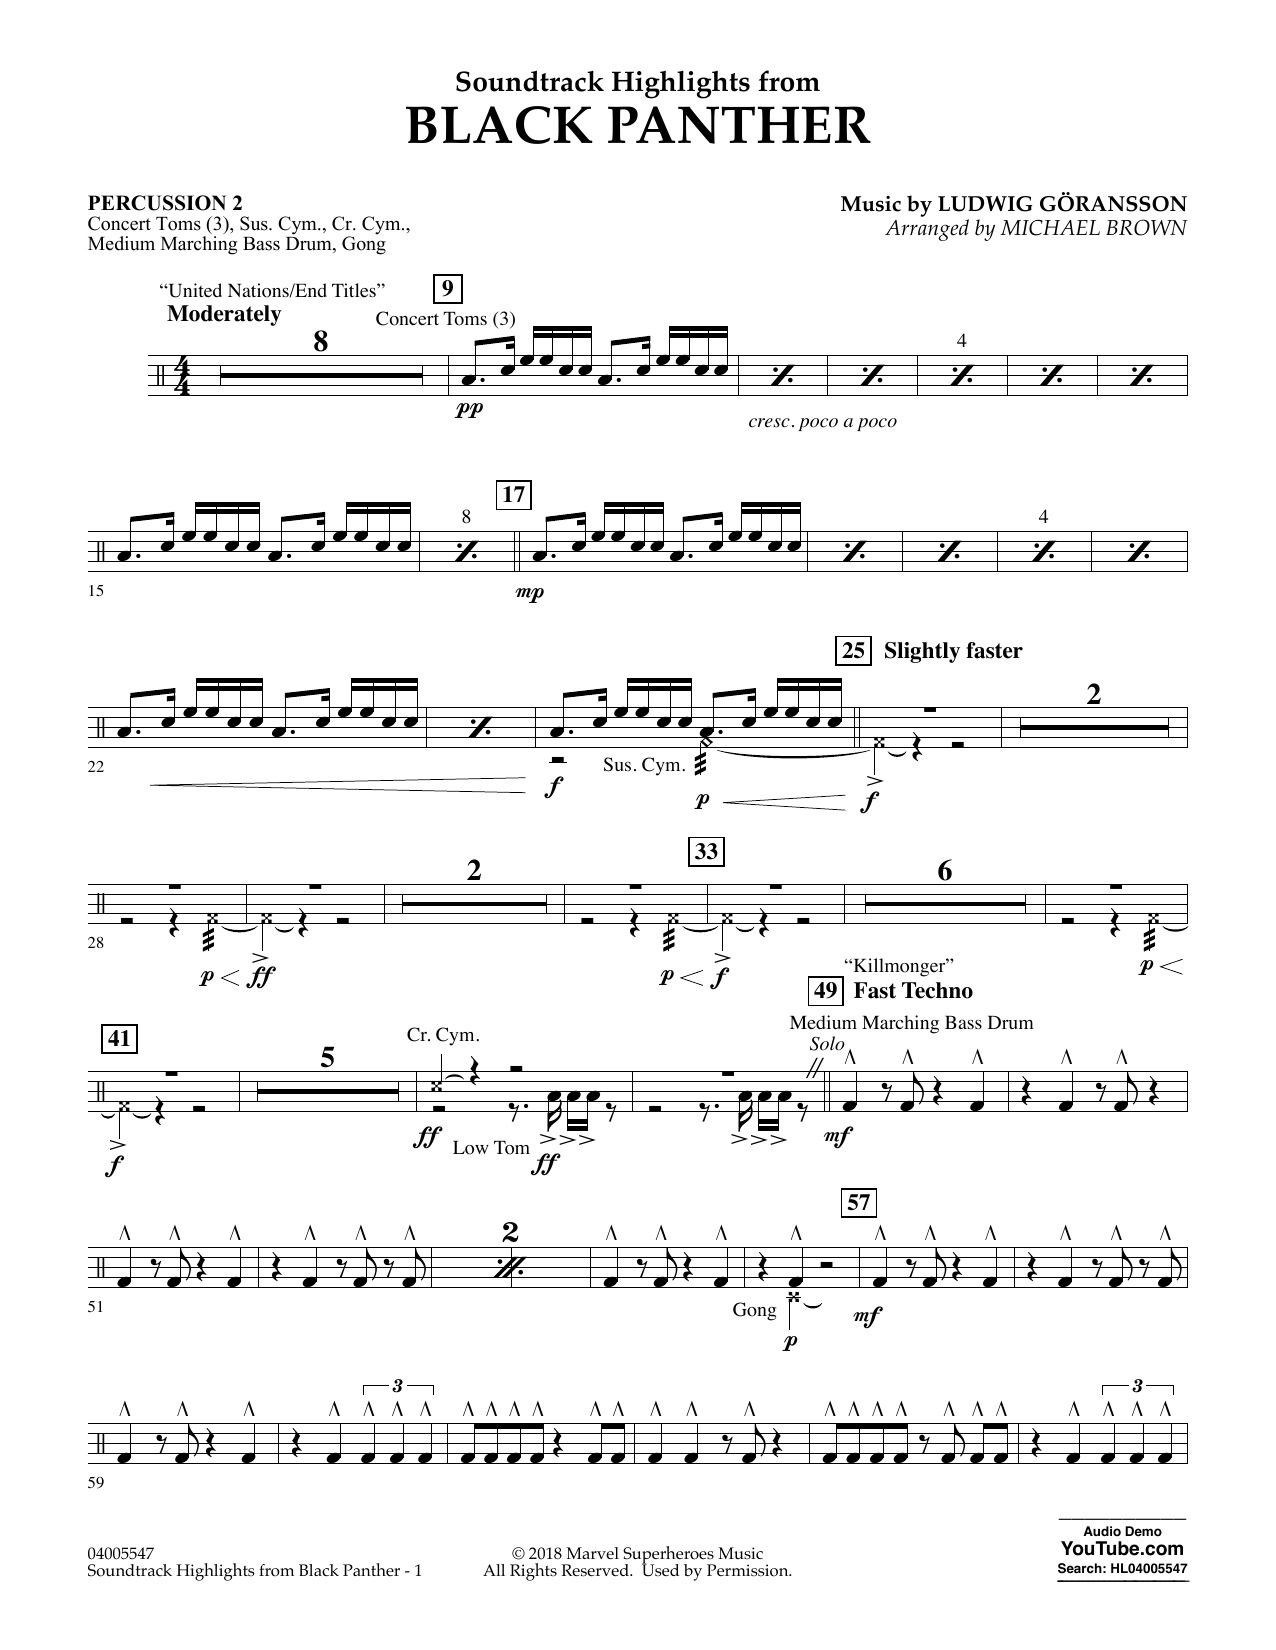 Download Michael Brown 'Soundtrack Highlights from Black Panther - Percussion 2' Digital Sheet Music Notes & Chords and start playing in minutes